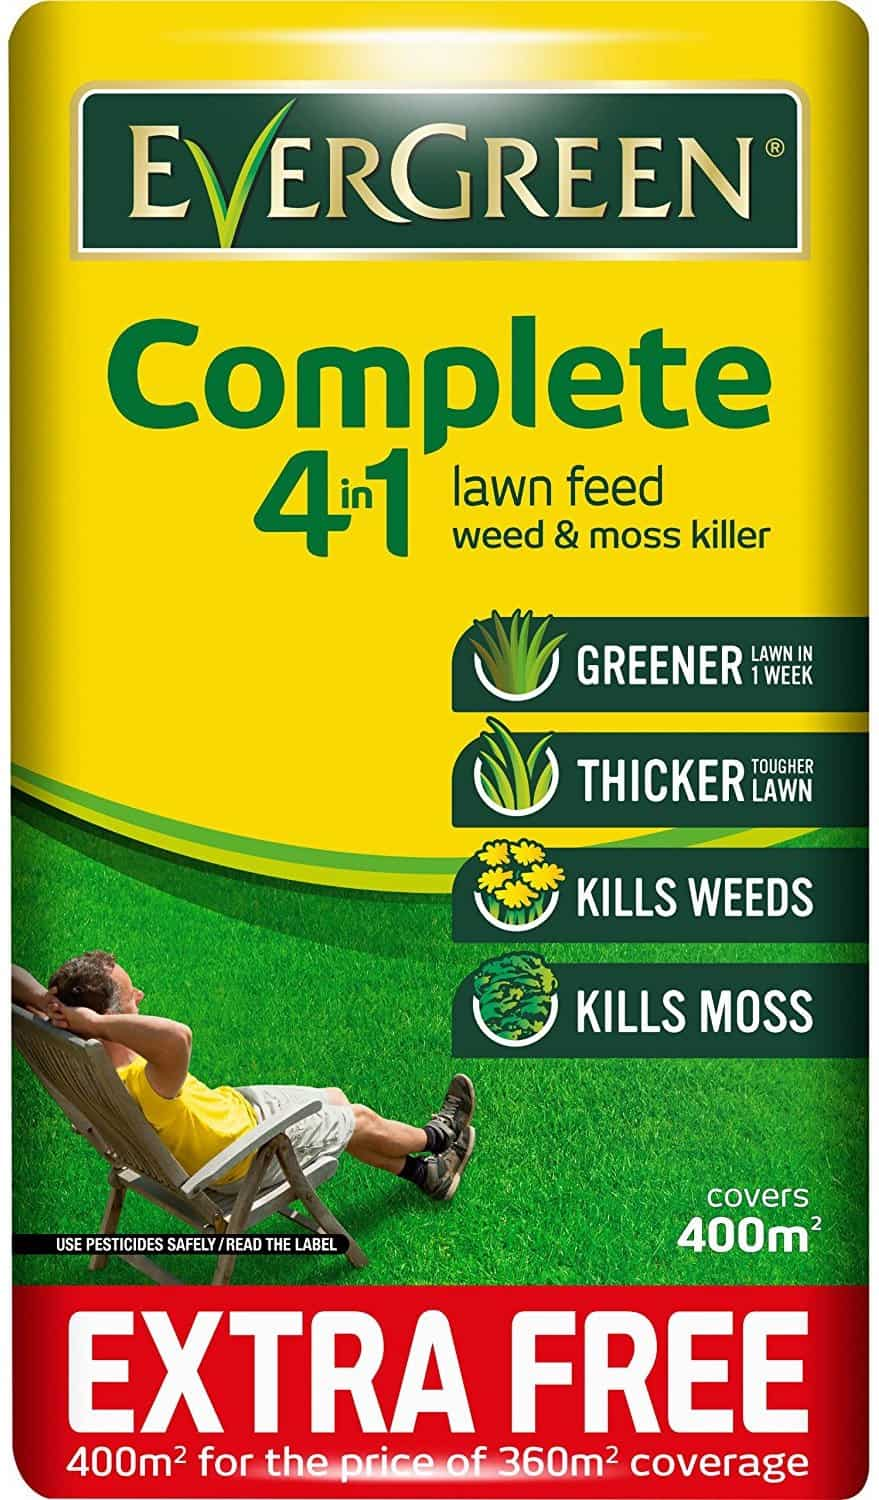 Best Lawn Feed and Weed Killer – EverGreen